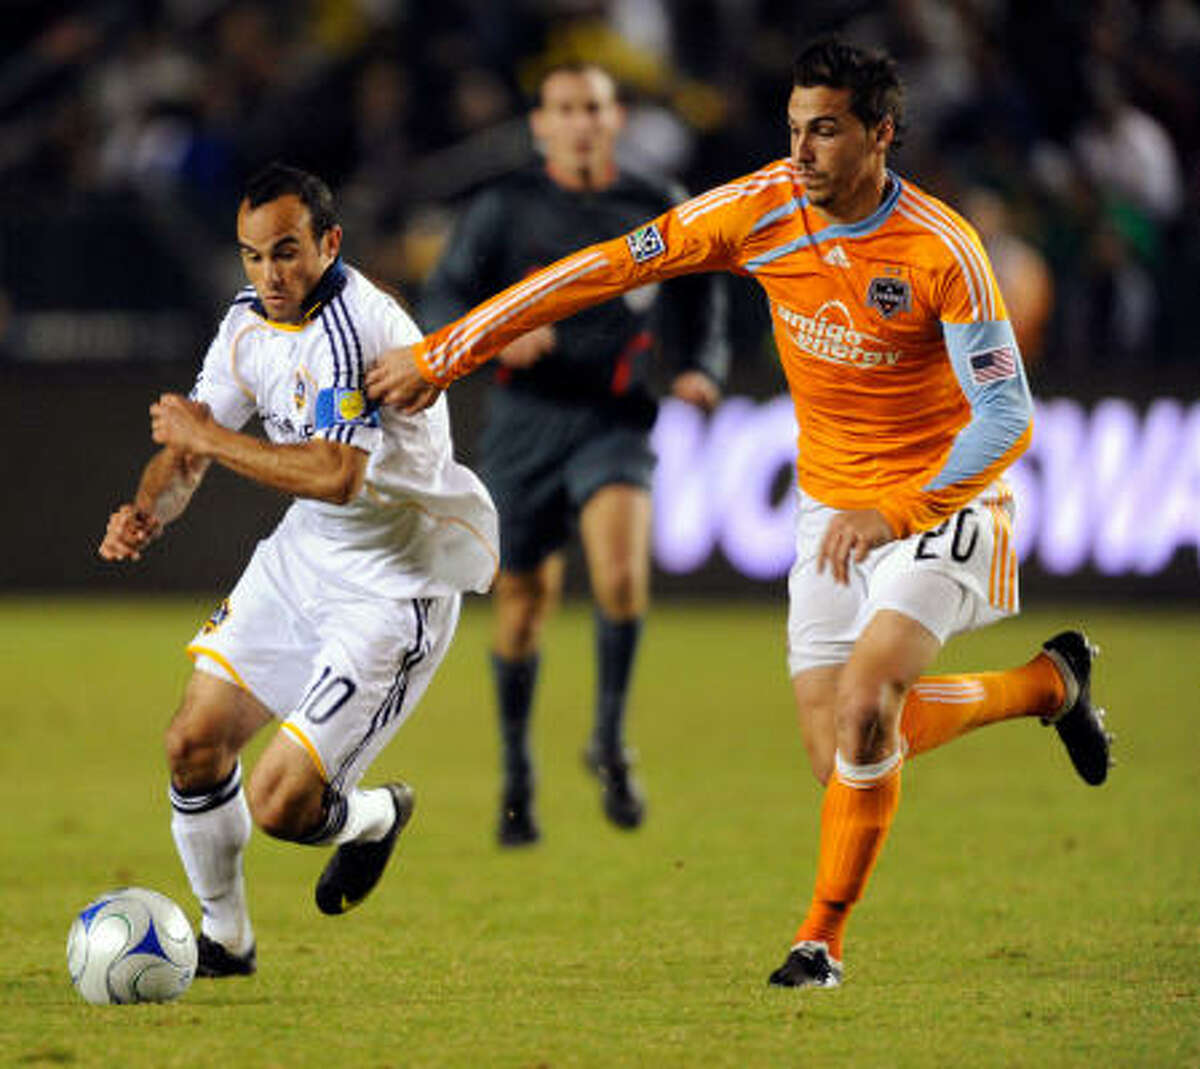 Defender Geoff Cameron, Houston Dynamo Cameron was a finalist for Defender of the Year and earned his first spot in the Best XI. He played 29 games this season, recording two goals and six assists and was a defensive force for a team that allowed a league-low 29 goals.